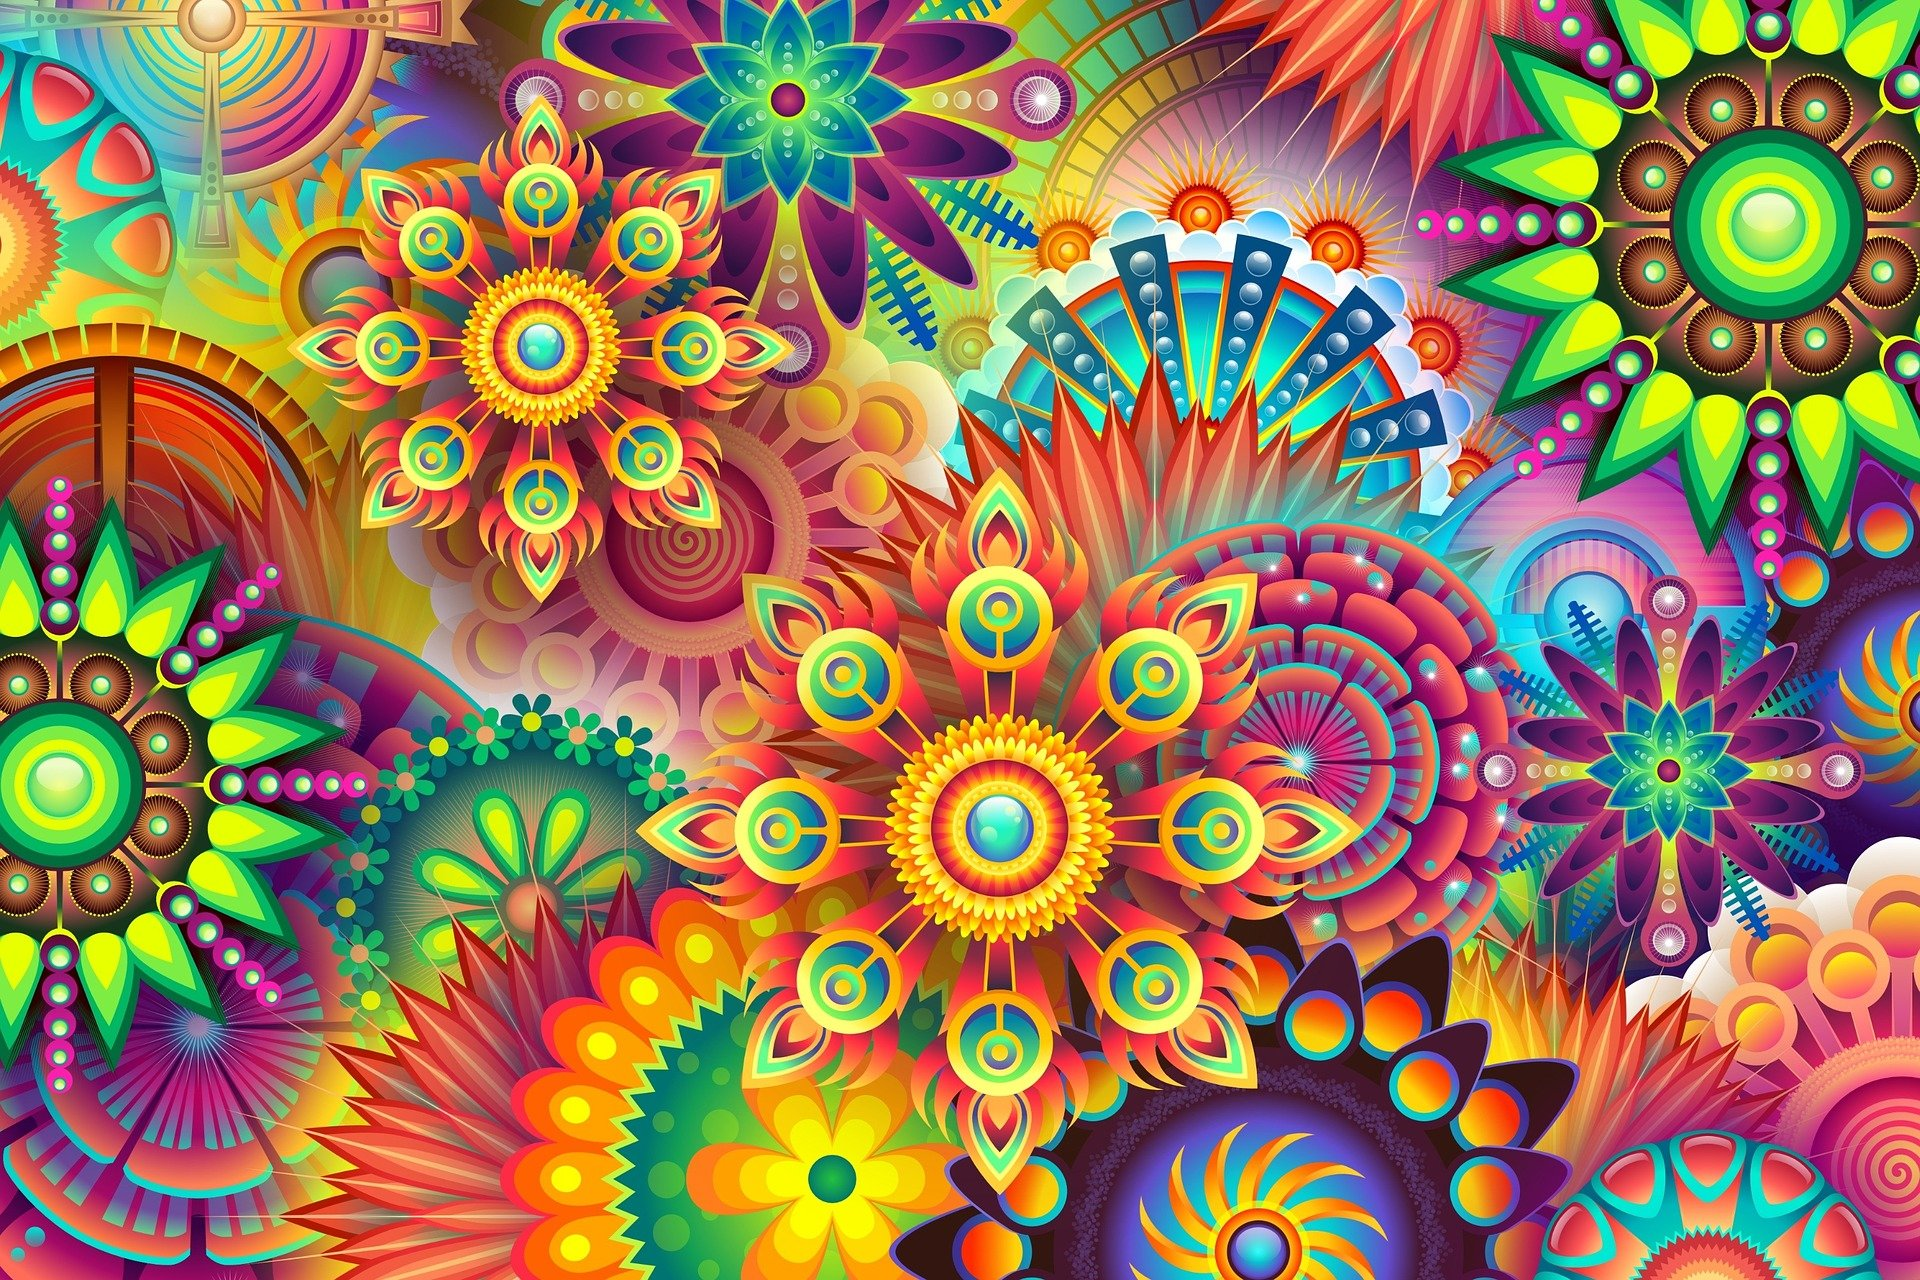 Treating mental disorders with psychedelic psychotherapy